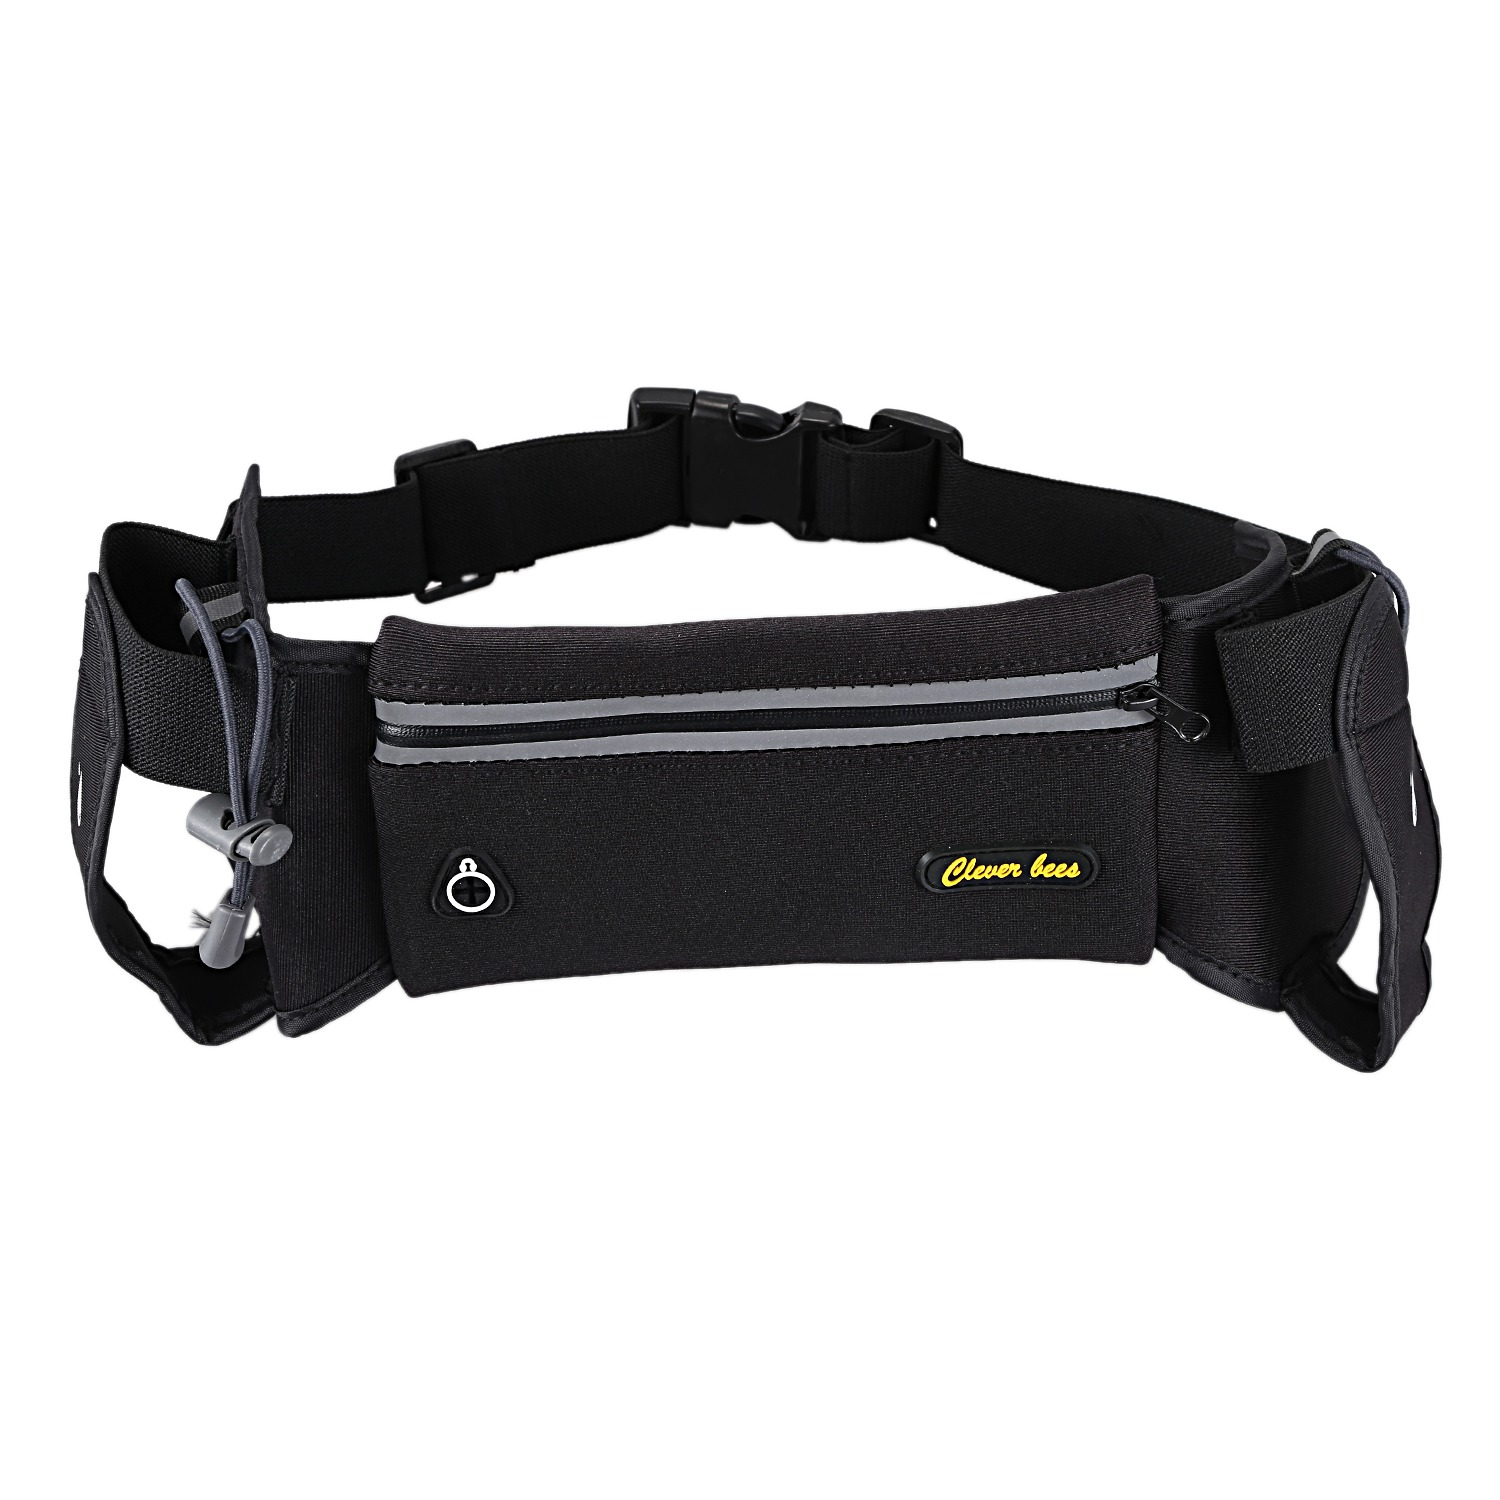 ELOS-clever bees Running Hydration Belt,Waterproof Sport Waist Pack with 2 Water Bottles Pocket,Adjustable Running Pouch with